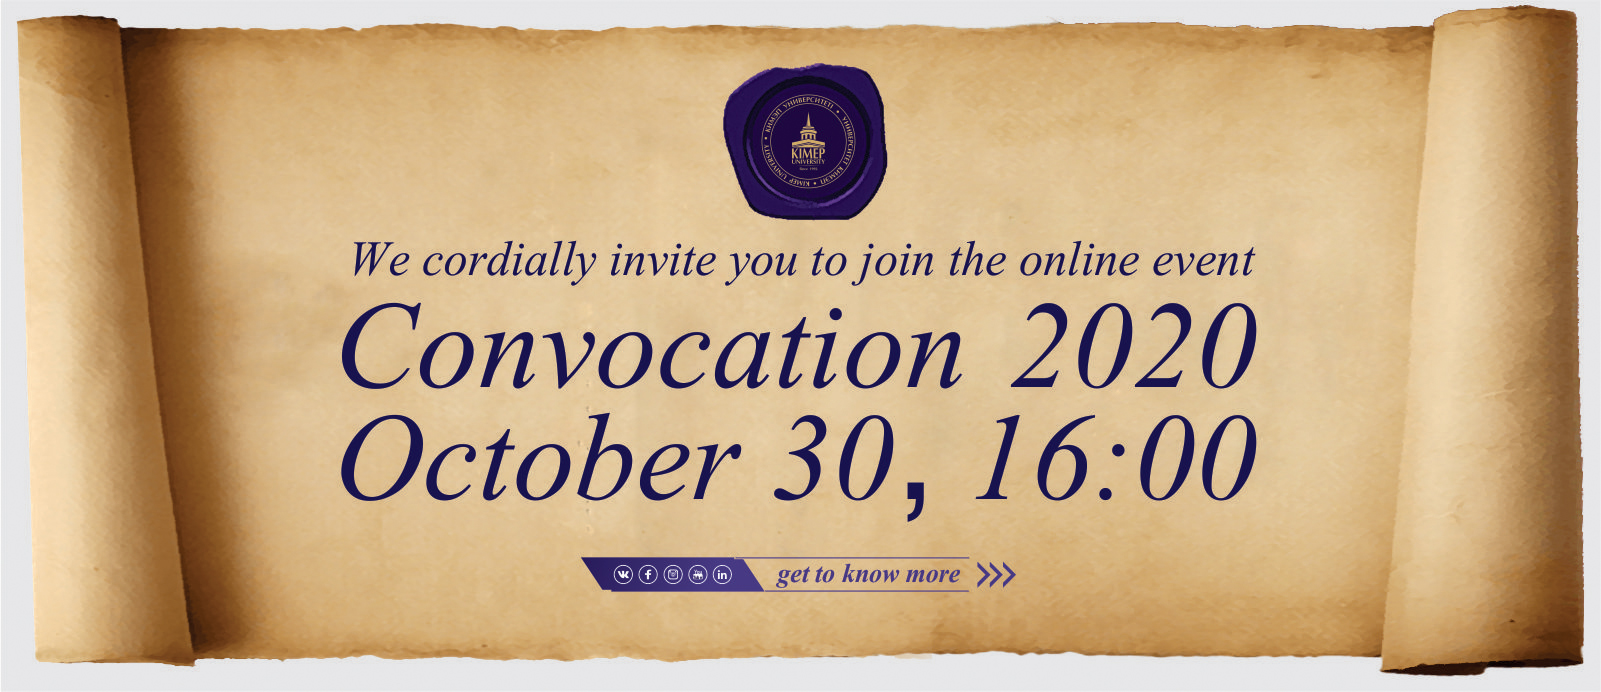 Slider Invitation Convocation Vip